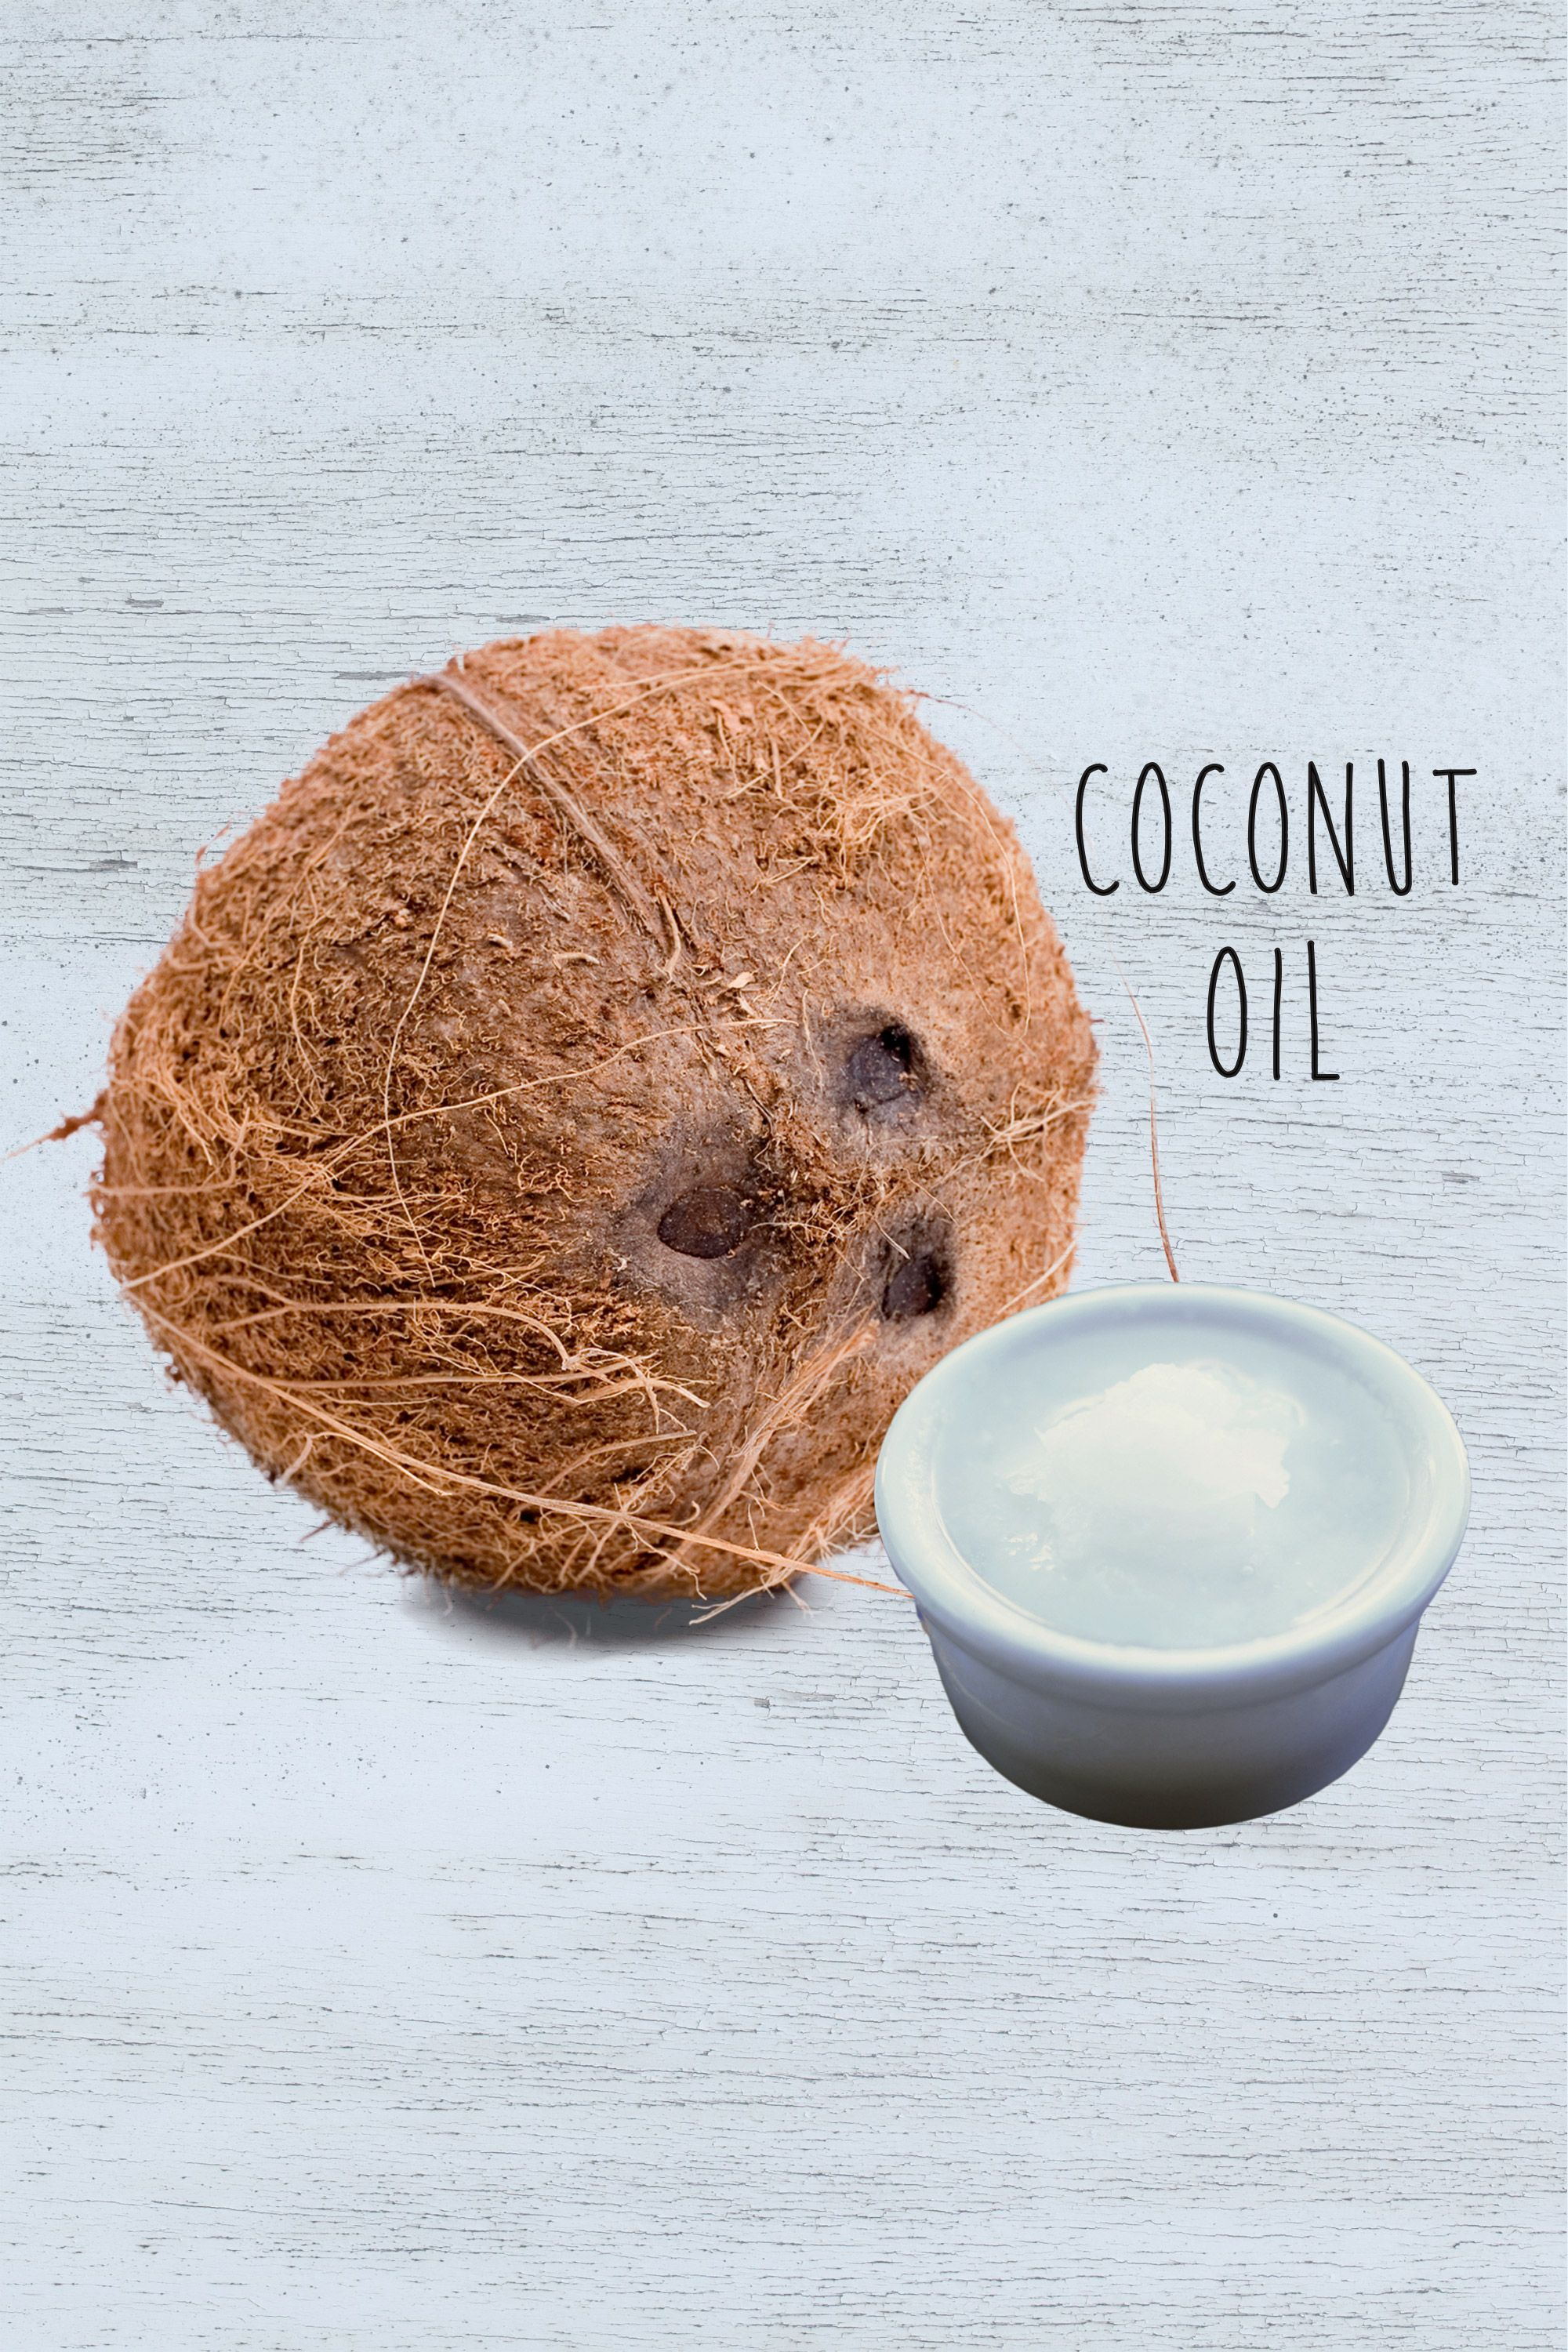 "<p><strong data-redactor-tag=""strong"" data-verified=""redactor"">Why it works: </strong>Coconut oil smells delish and delivers a heap of fatty acids to amp up your&nbsp&#x3B;hair's gloss. <strong data-redactor-tag=""strong"" data-verified=""redactor"">How to do it:</strong> Run a tad through your ends to make them smooth and supple. If you use just a touch, you can leave it in your&nbsp&#x3B;hair, letting your&nbsp&#x3B;ends&nbsp&#x3B;benefit from a long-term moisture boost.  For an all-over treatment for parched strands, comb a few tablespoons through your whole head,&nbsp&#x3B;and leave it in for at&nbsp&#x3B;least 20 minutes&nbsp&#x3B;before shampooing.&nbsp&#x3B;<strong data-redactor-tag=""strong"" data-verified=""redactor"">What you'll get:</strong> Smooth—instead of straw-like—shiny hair.&nbsp&#x3B;</p>"